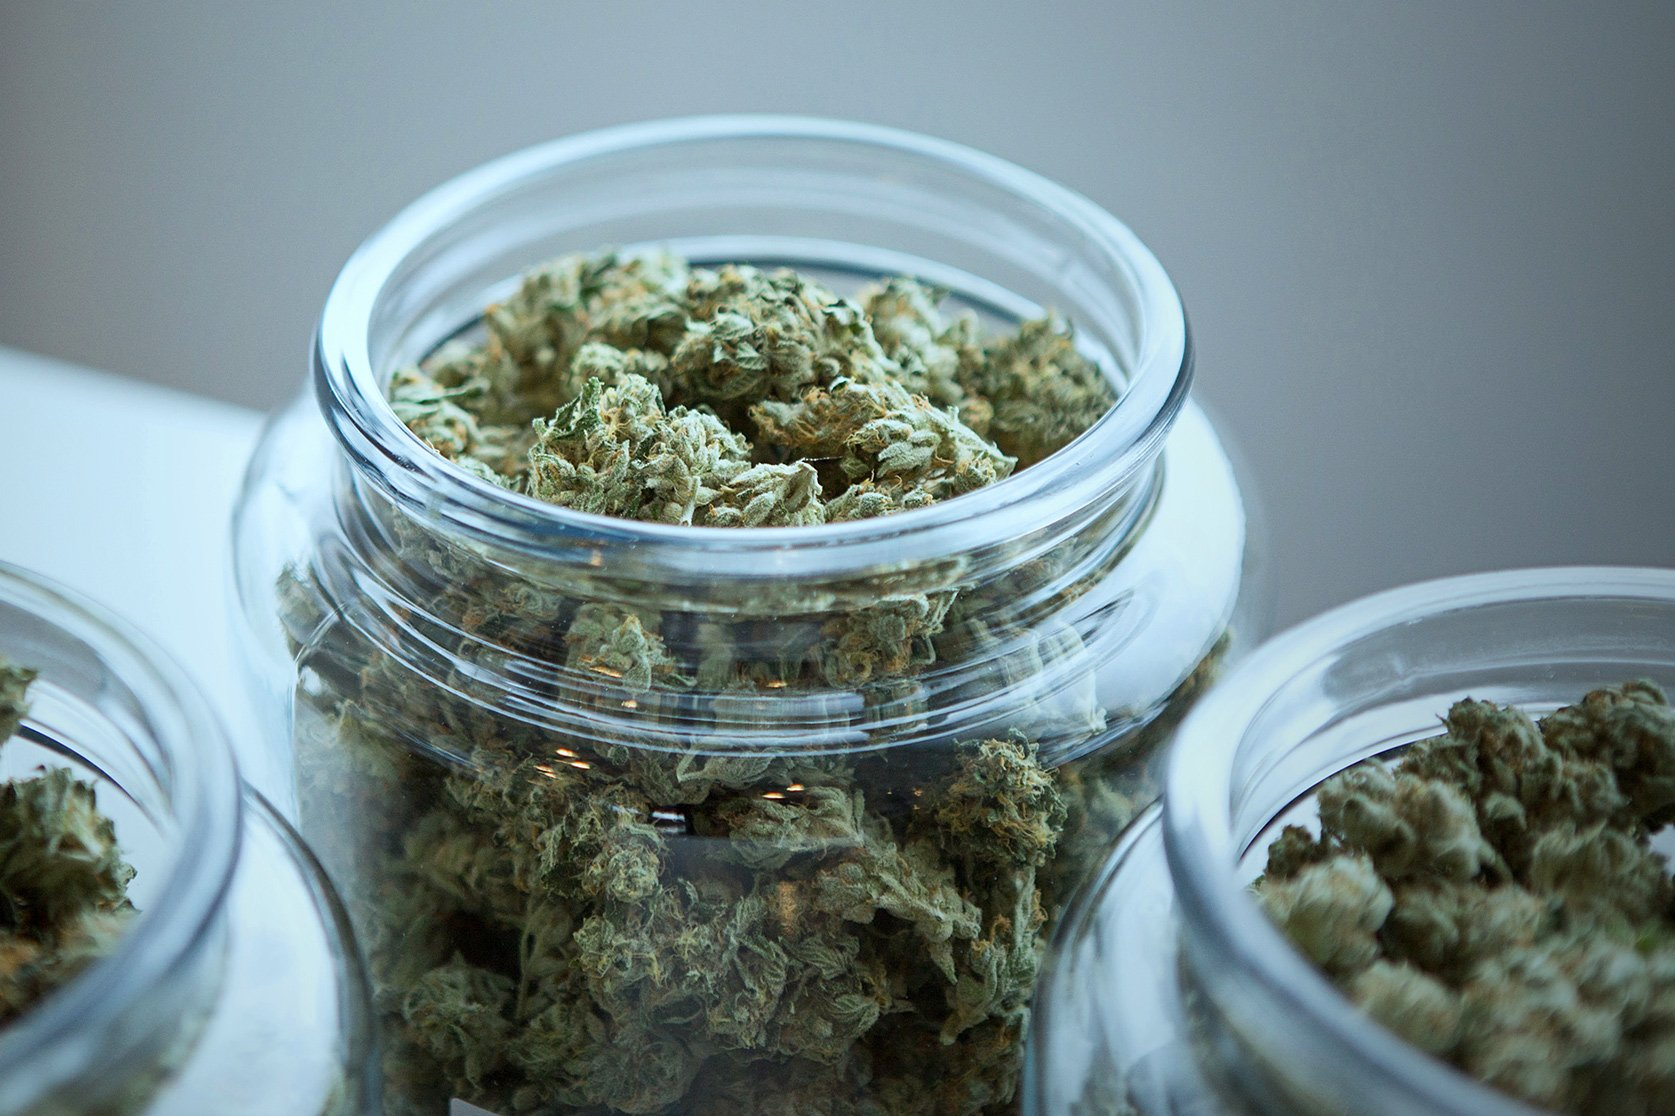 Marijuana in a jar